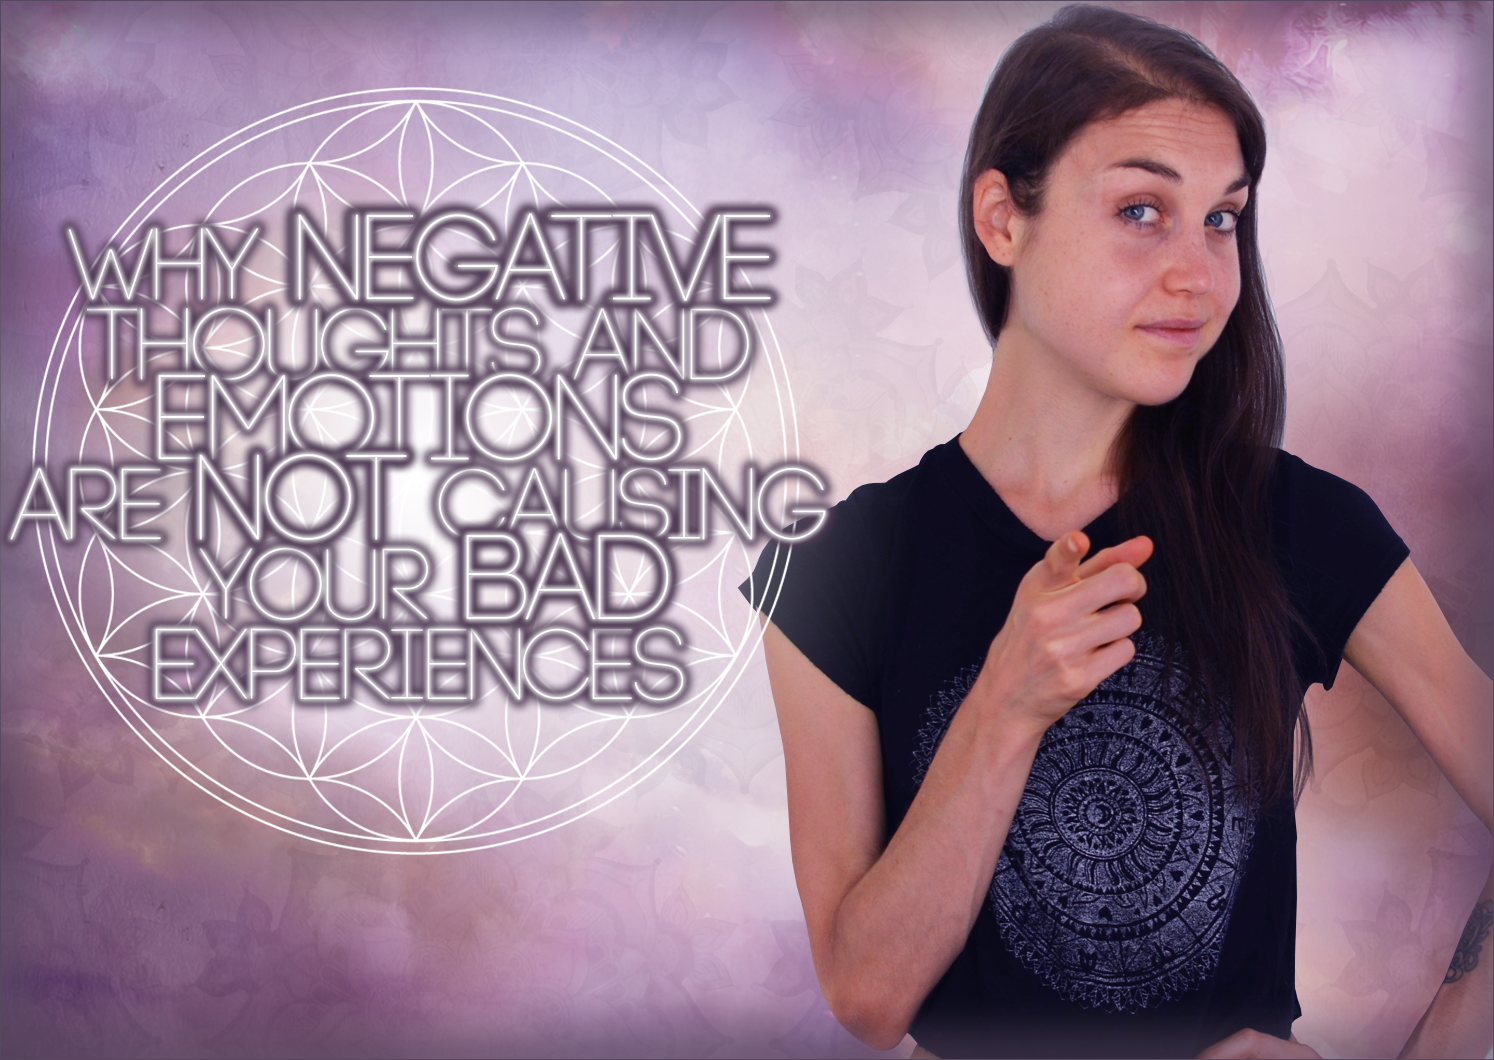 Why Negative Thoughts and Emotions Are Not CAUSING Your Negative/Painful Experiences